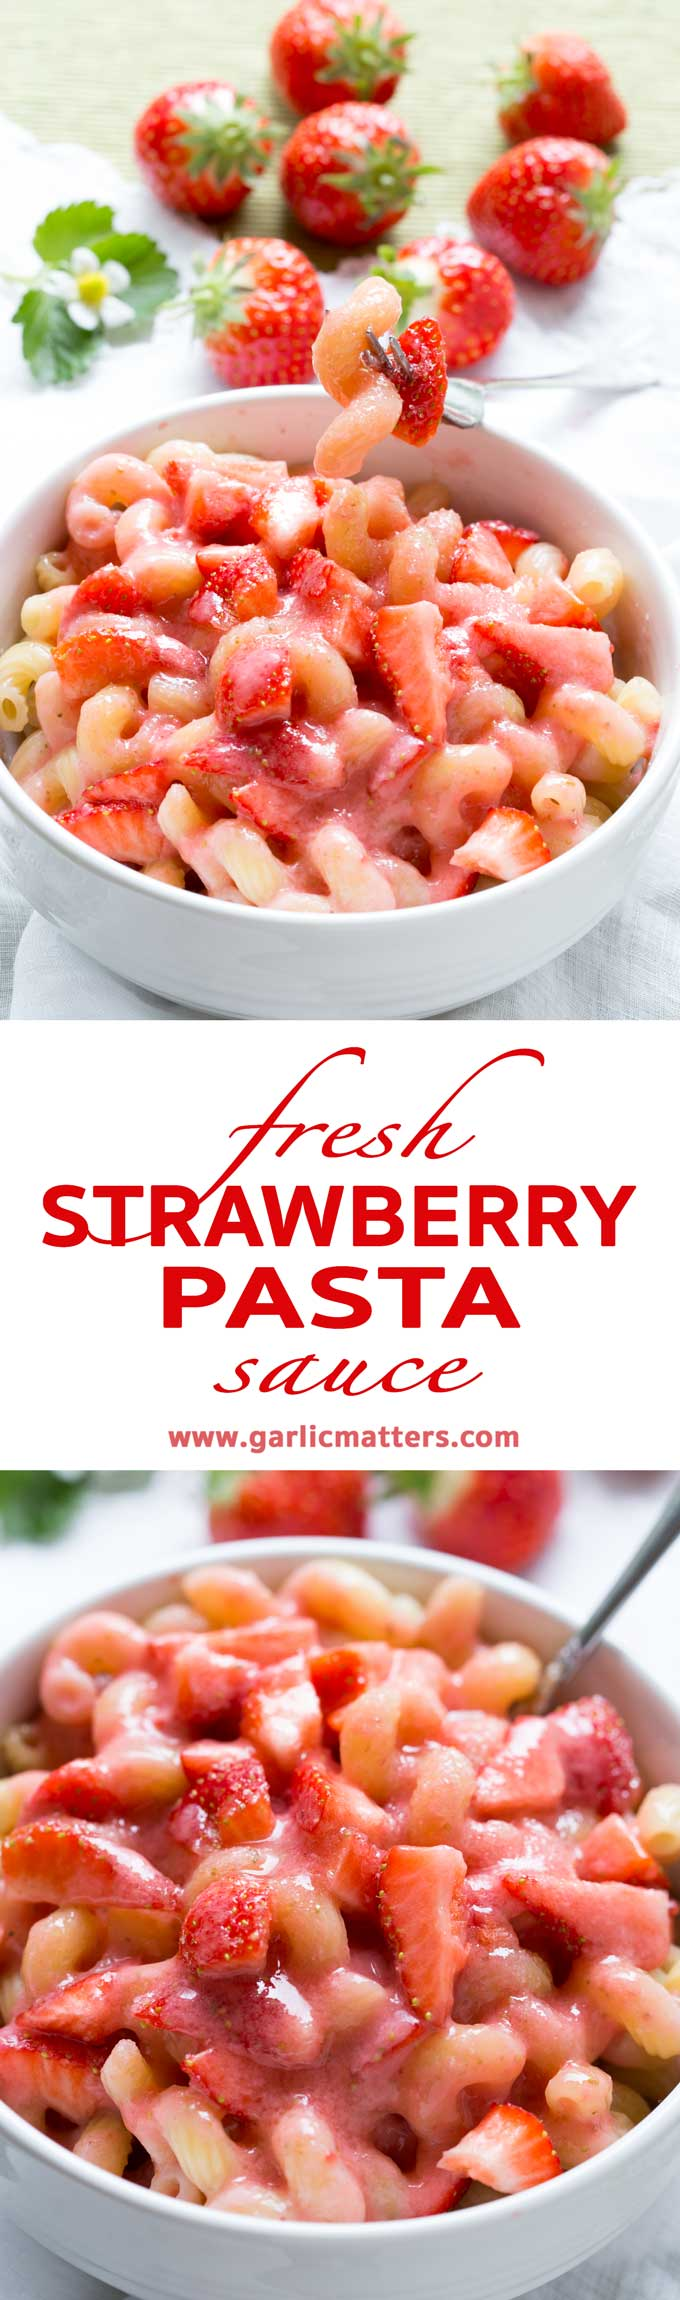 Fresh Strawberry Sauce Pasta is a perfect, 10 minute dish that your kids will love. Easy, quick and only 4 ingredients lunch or snack.